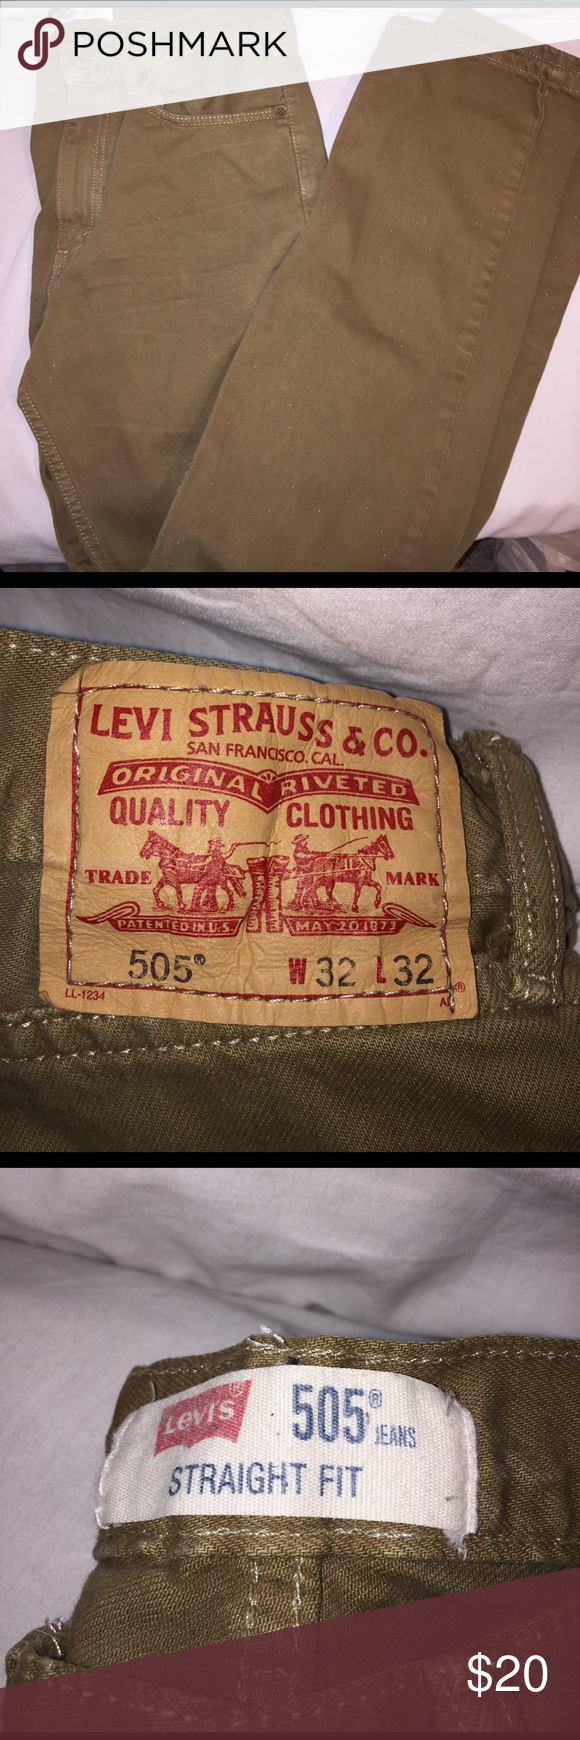 Levi's 505 straight fit jeans Great gently worn tan 505 straight fit jeans. Size 32W 32L Levi's Jeans Straight